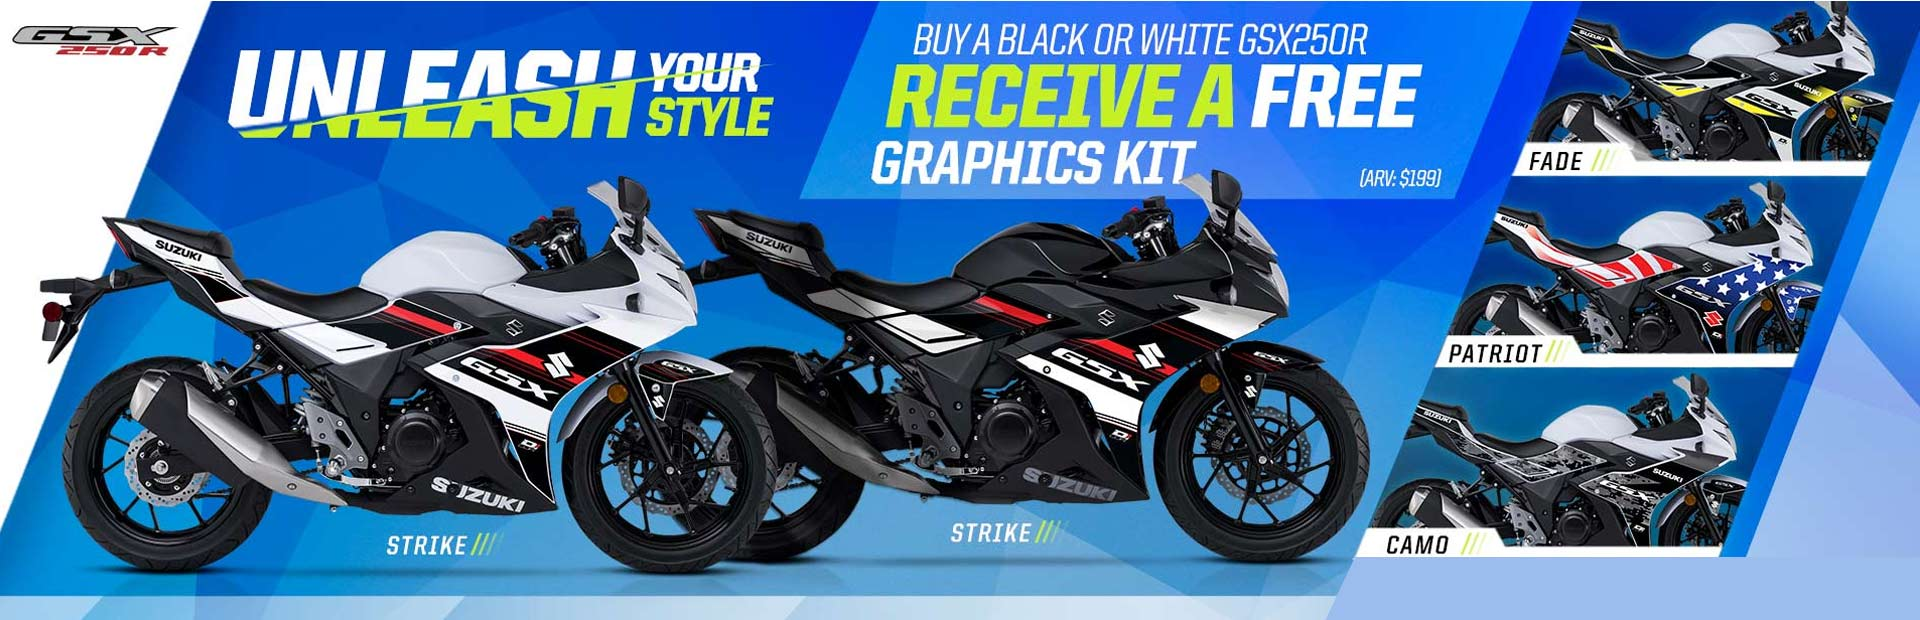 Suzuki: GSX250R Graphics Kit Promotion